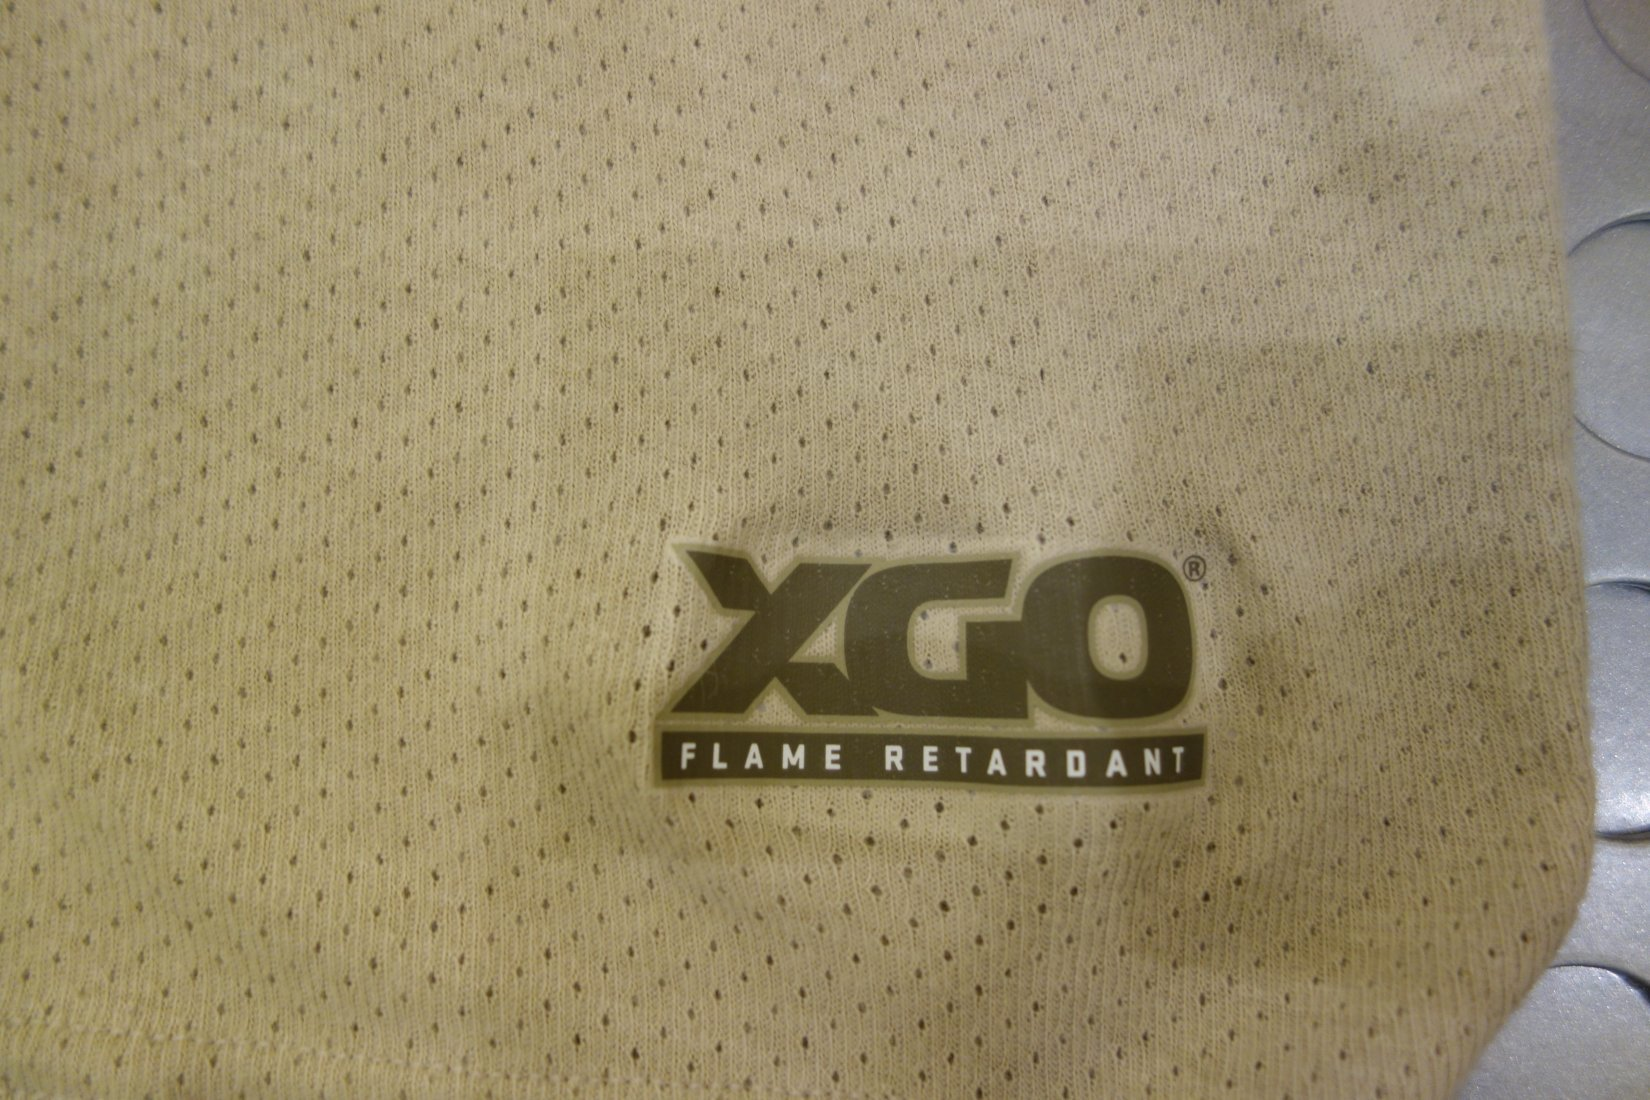 XGO Combat/Tactical T-Shirt and Underwear with FR (Flame-Retardant/Fire-Retardant) Moisture-Wicking Mesh Fabric and Antimicrobial Silver Fibers: Super-Comfortable, Stretchable and Breathable! (Video!)